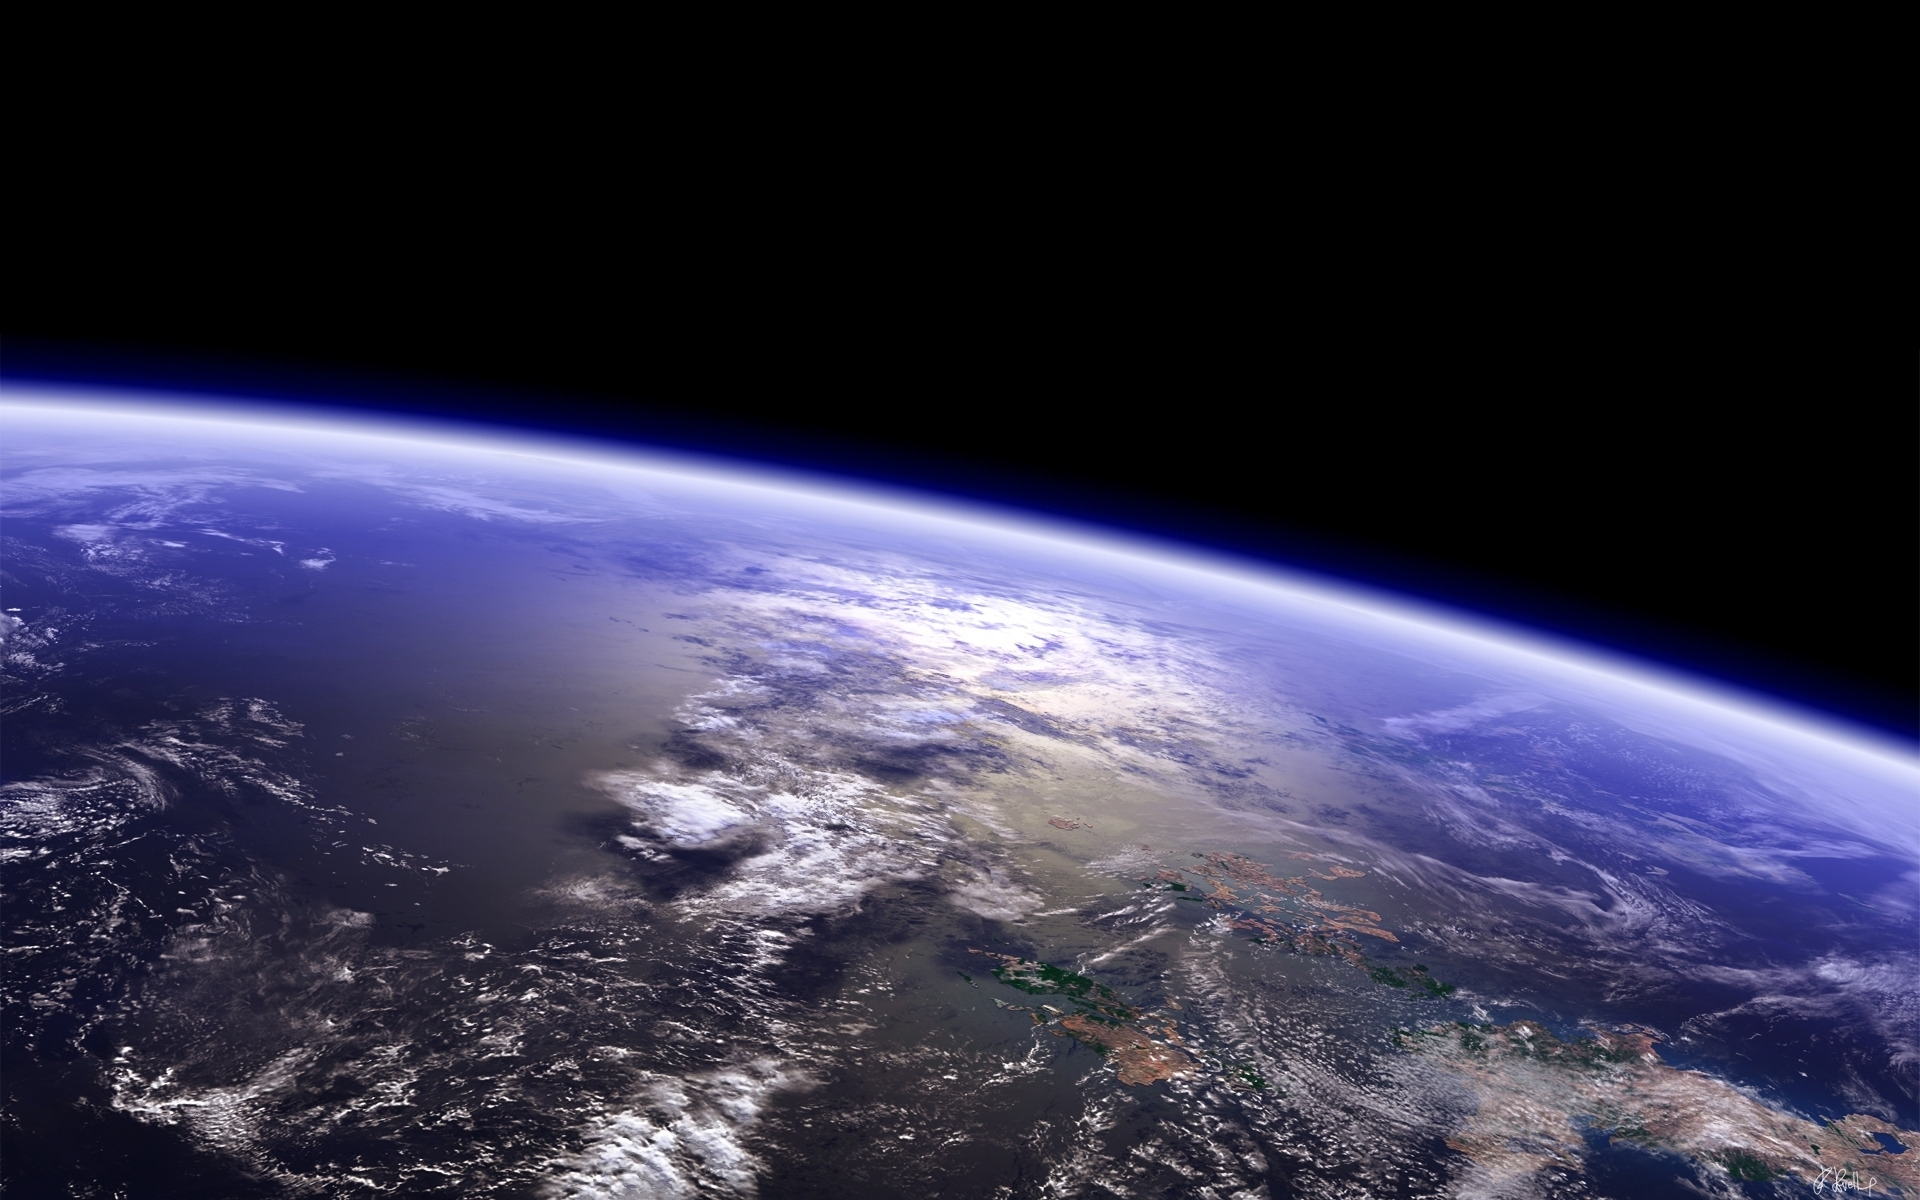 Earth From Space Wallpaper Marvelous Planet And Wallpapers Hongkiat 1920x1200